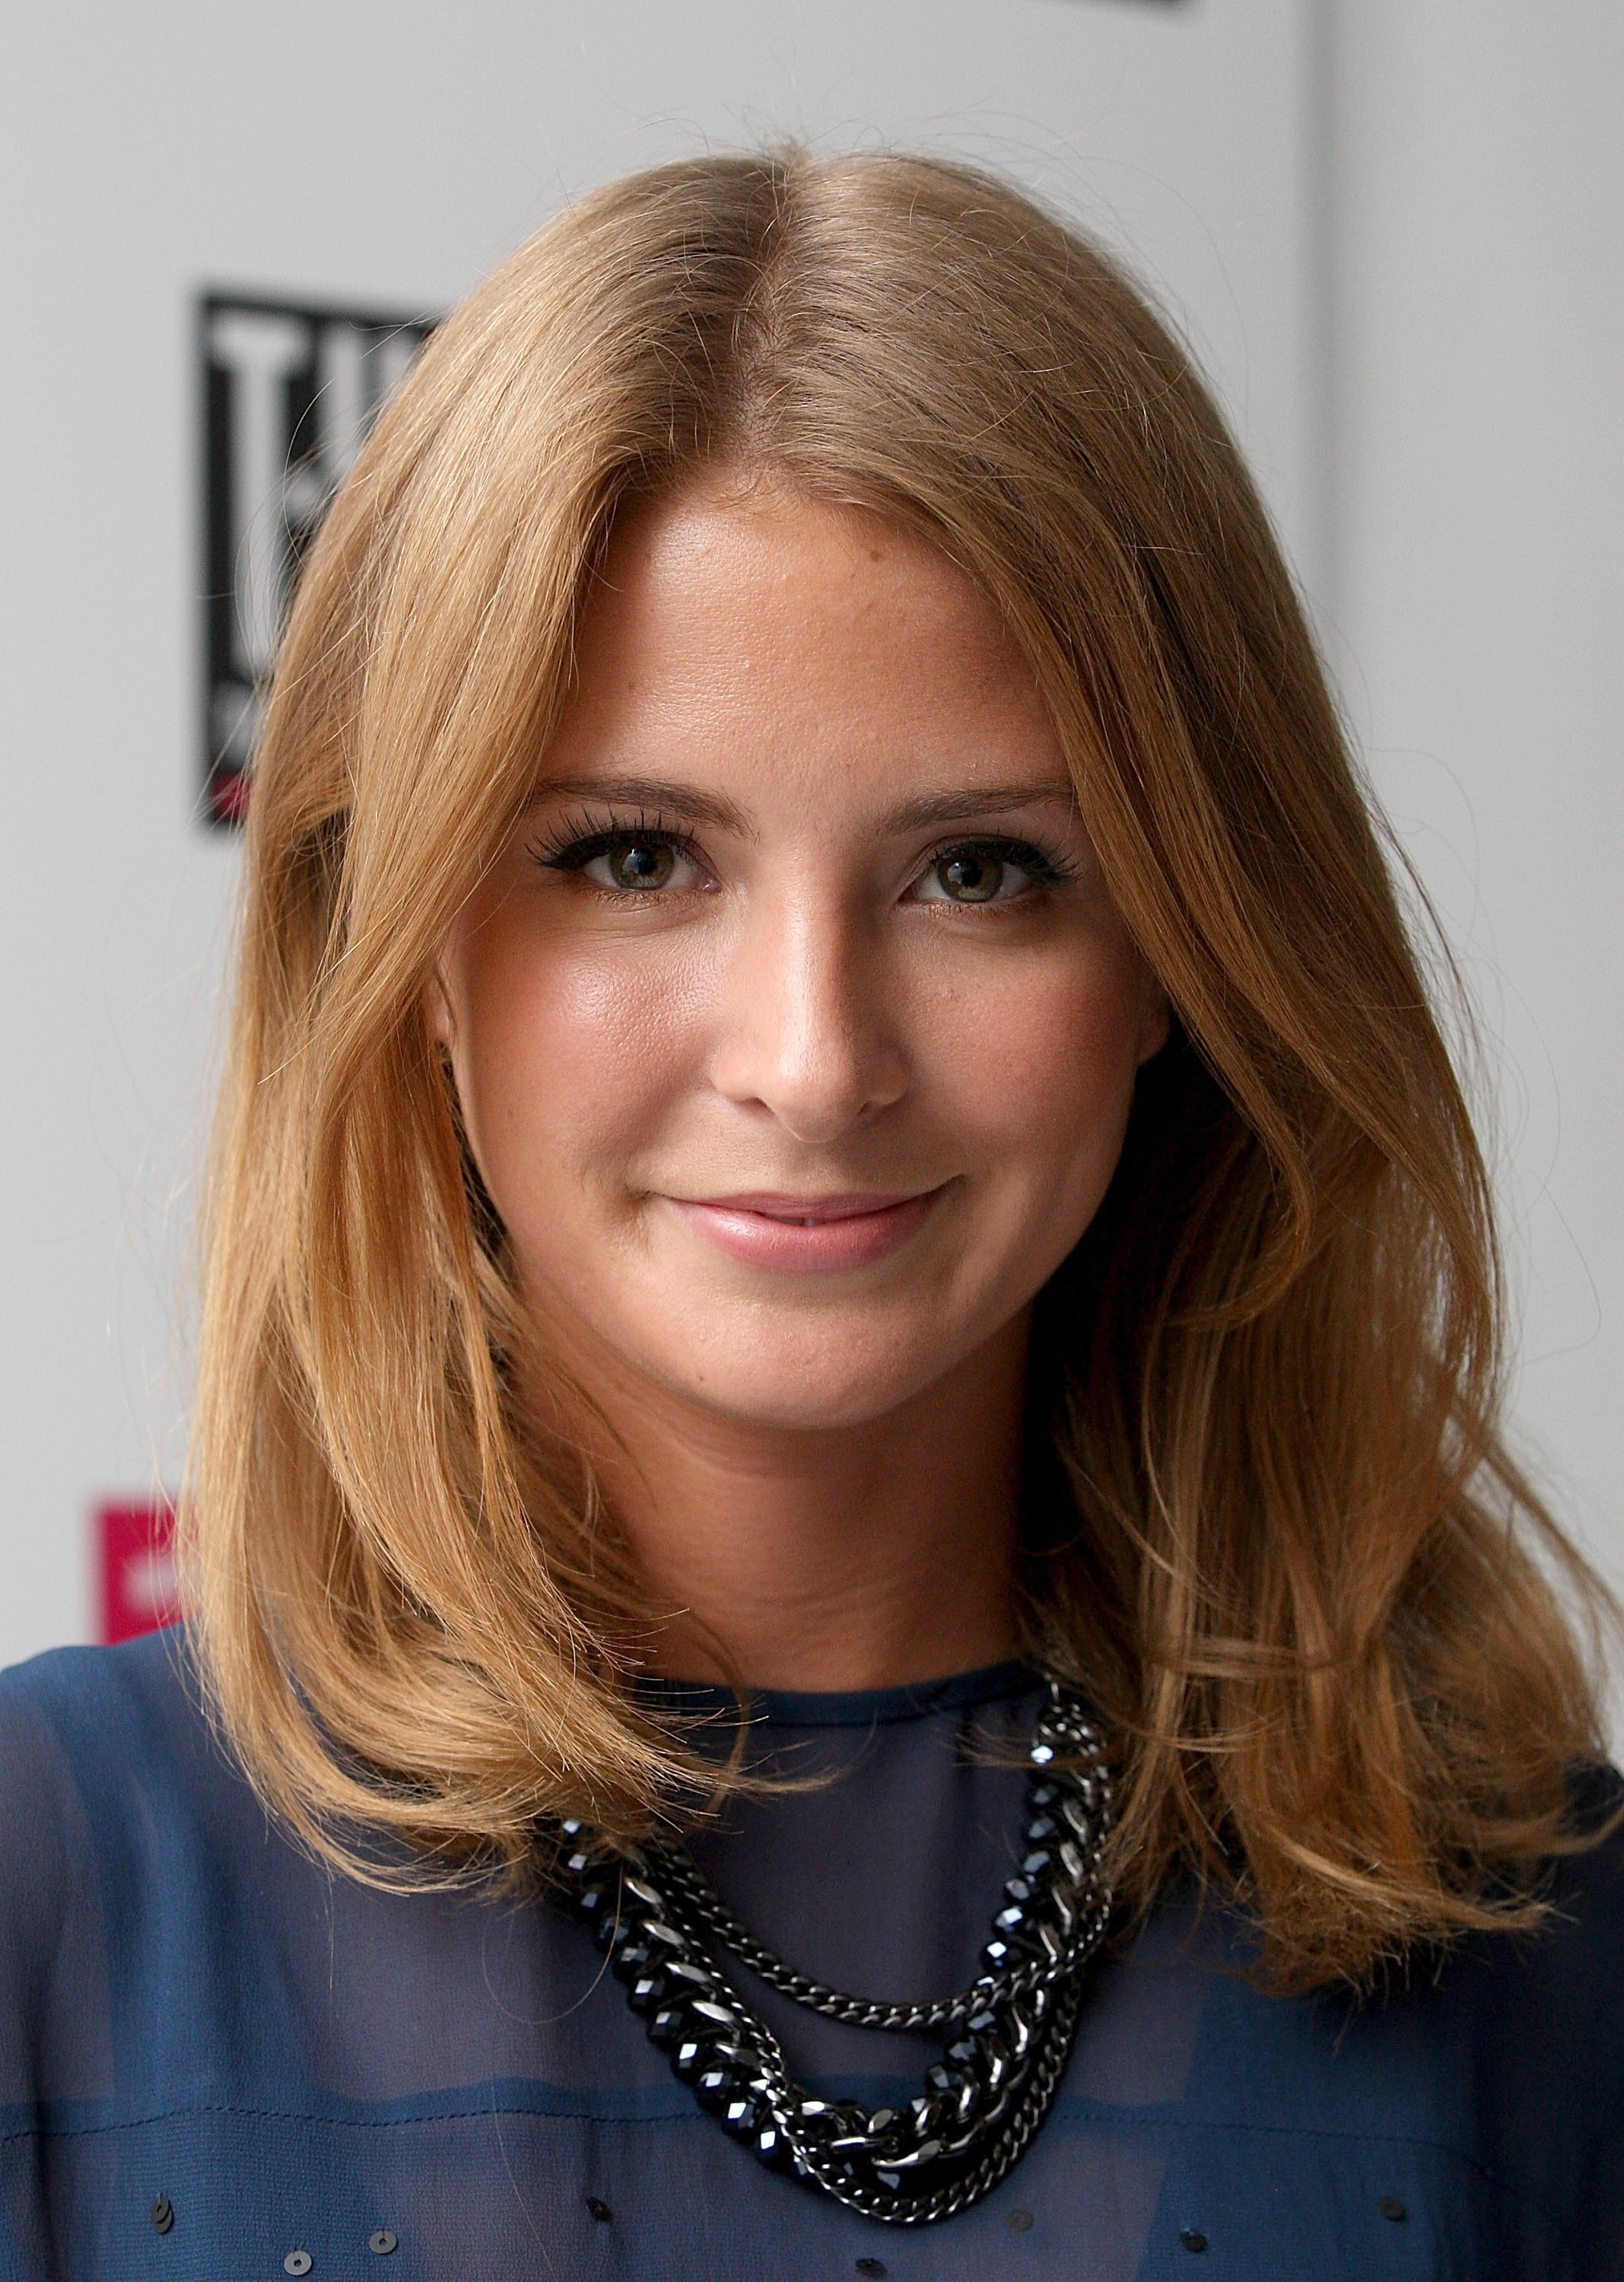 Millie Mackintosh Net Worth